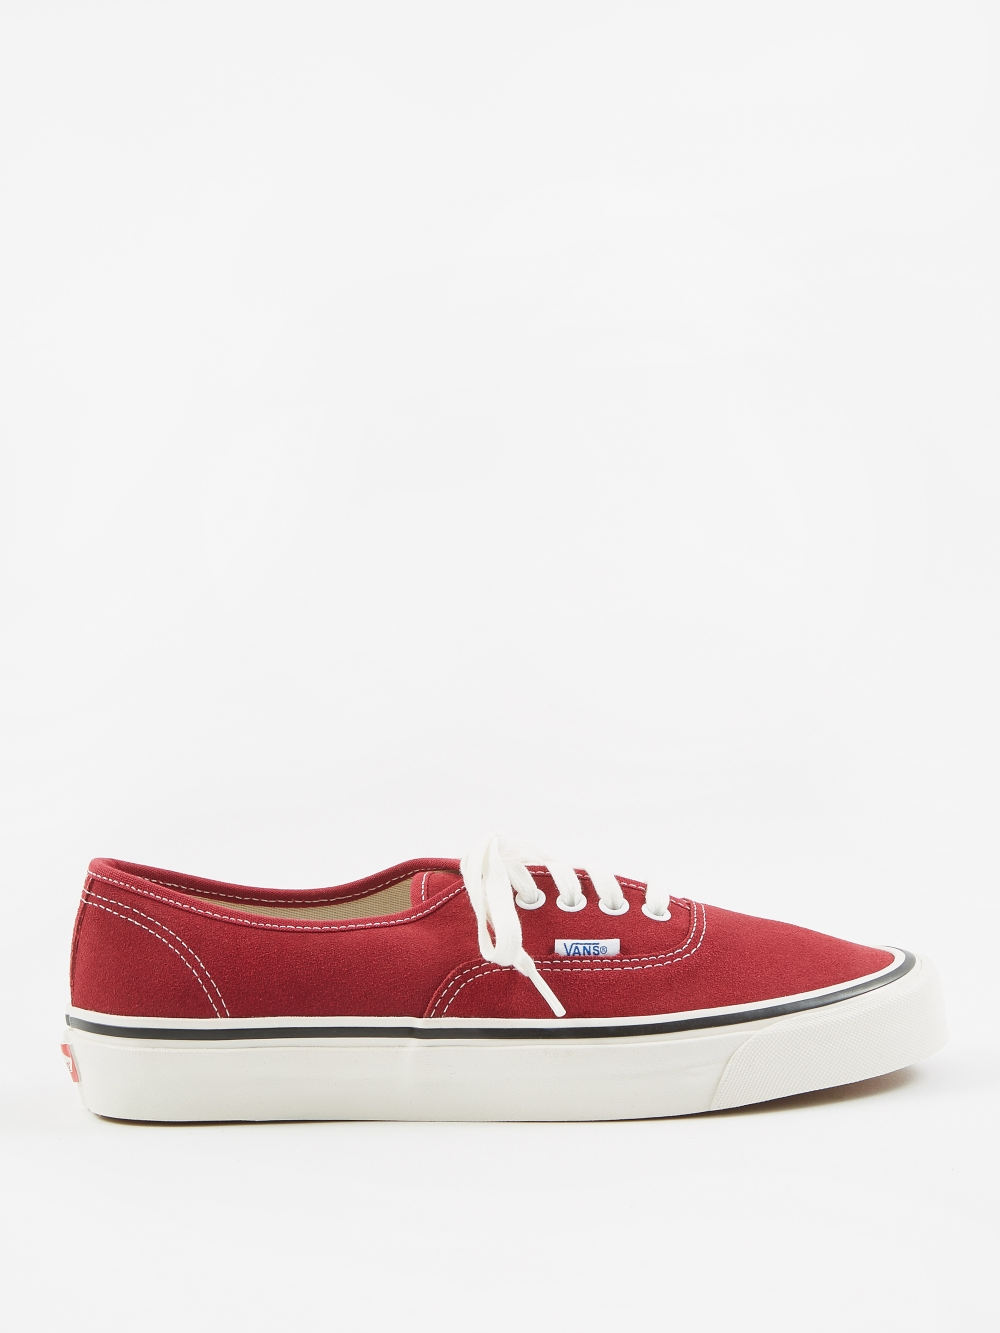 Vans Authentic 44 DX - (Anaheim Factory) OG Brick Suede (Image 1 4065ebb469d2